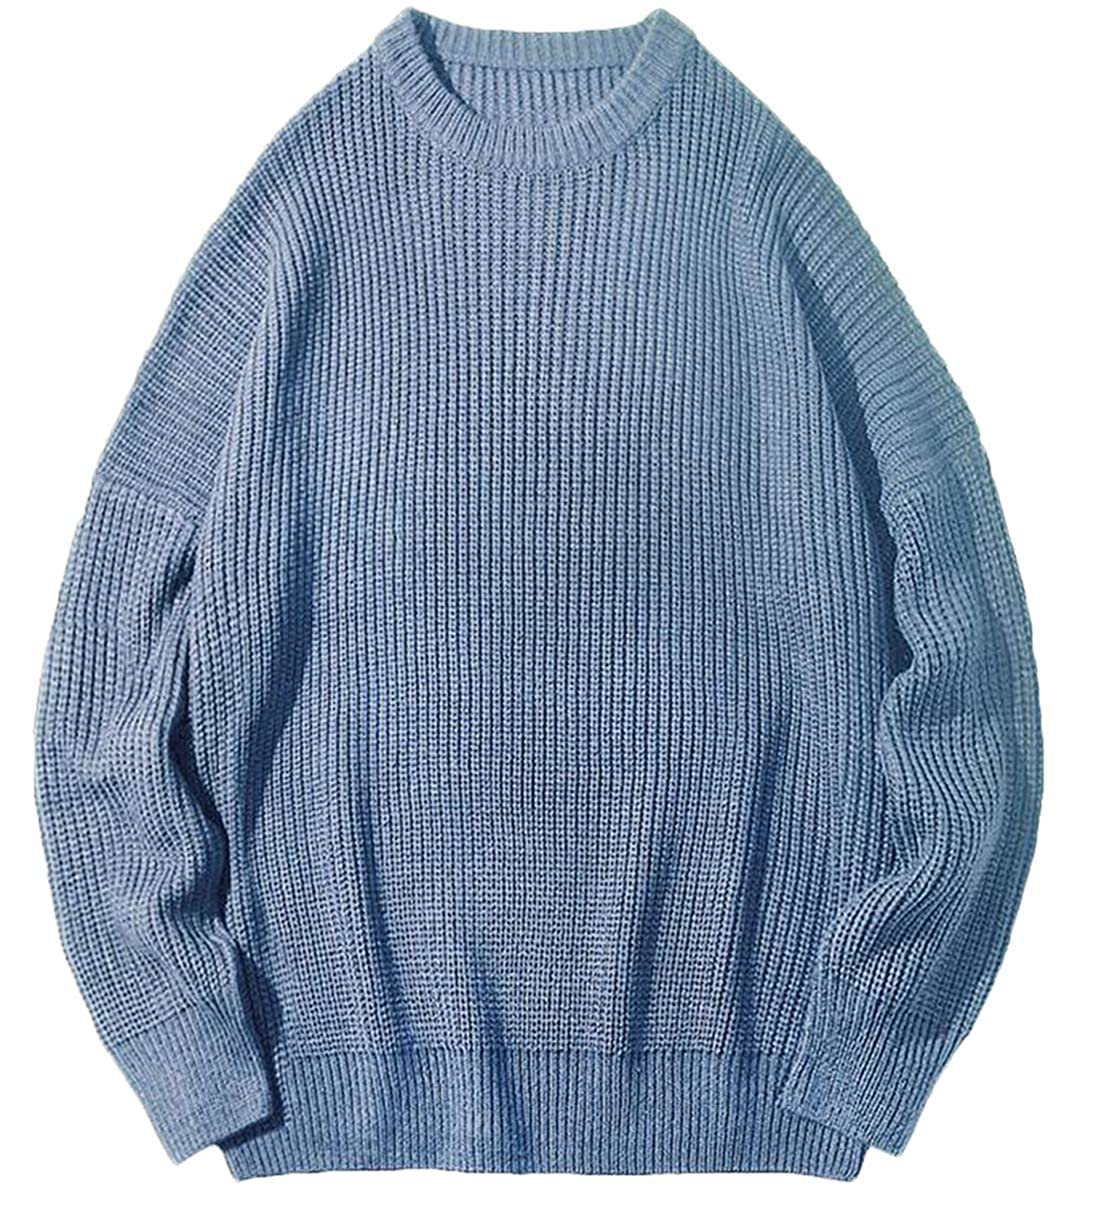 Frieed Mens Stylish Pullover Top Crew Neck Long Sleeve Knitting Casual Baggy Sweater